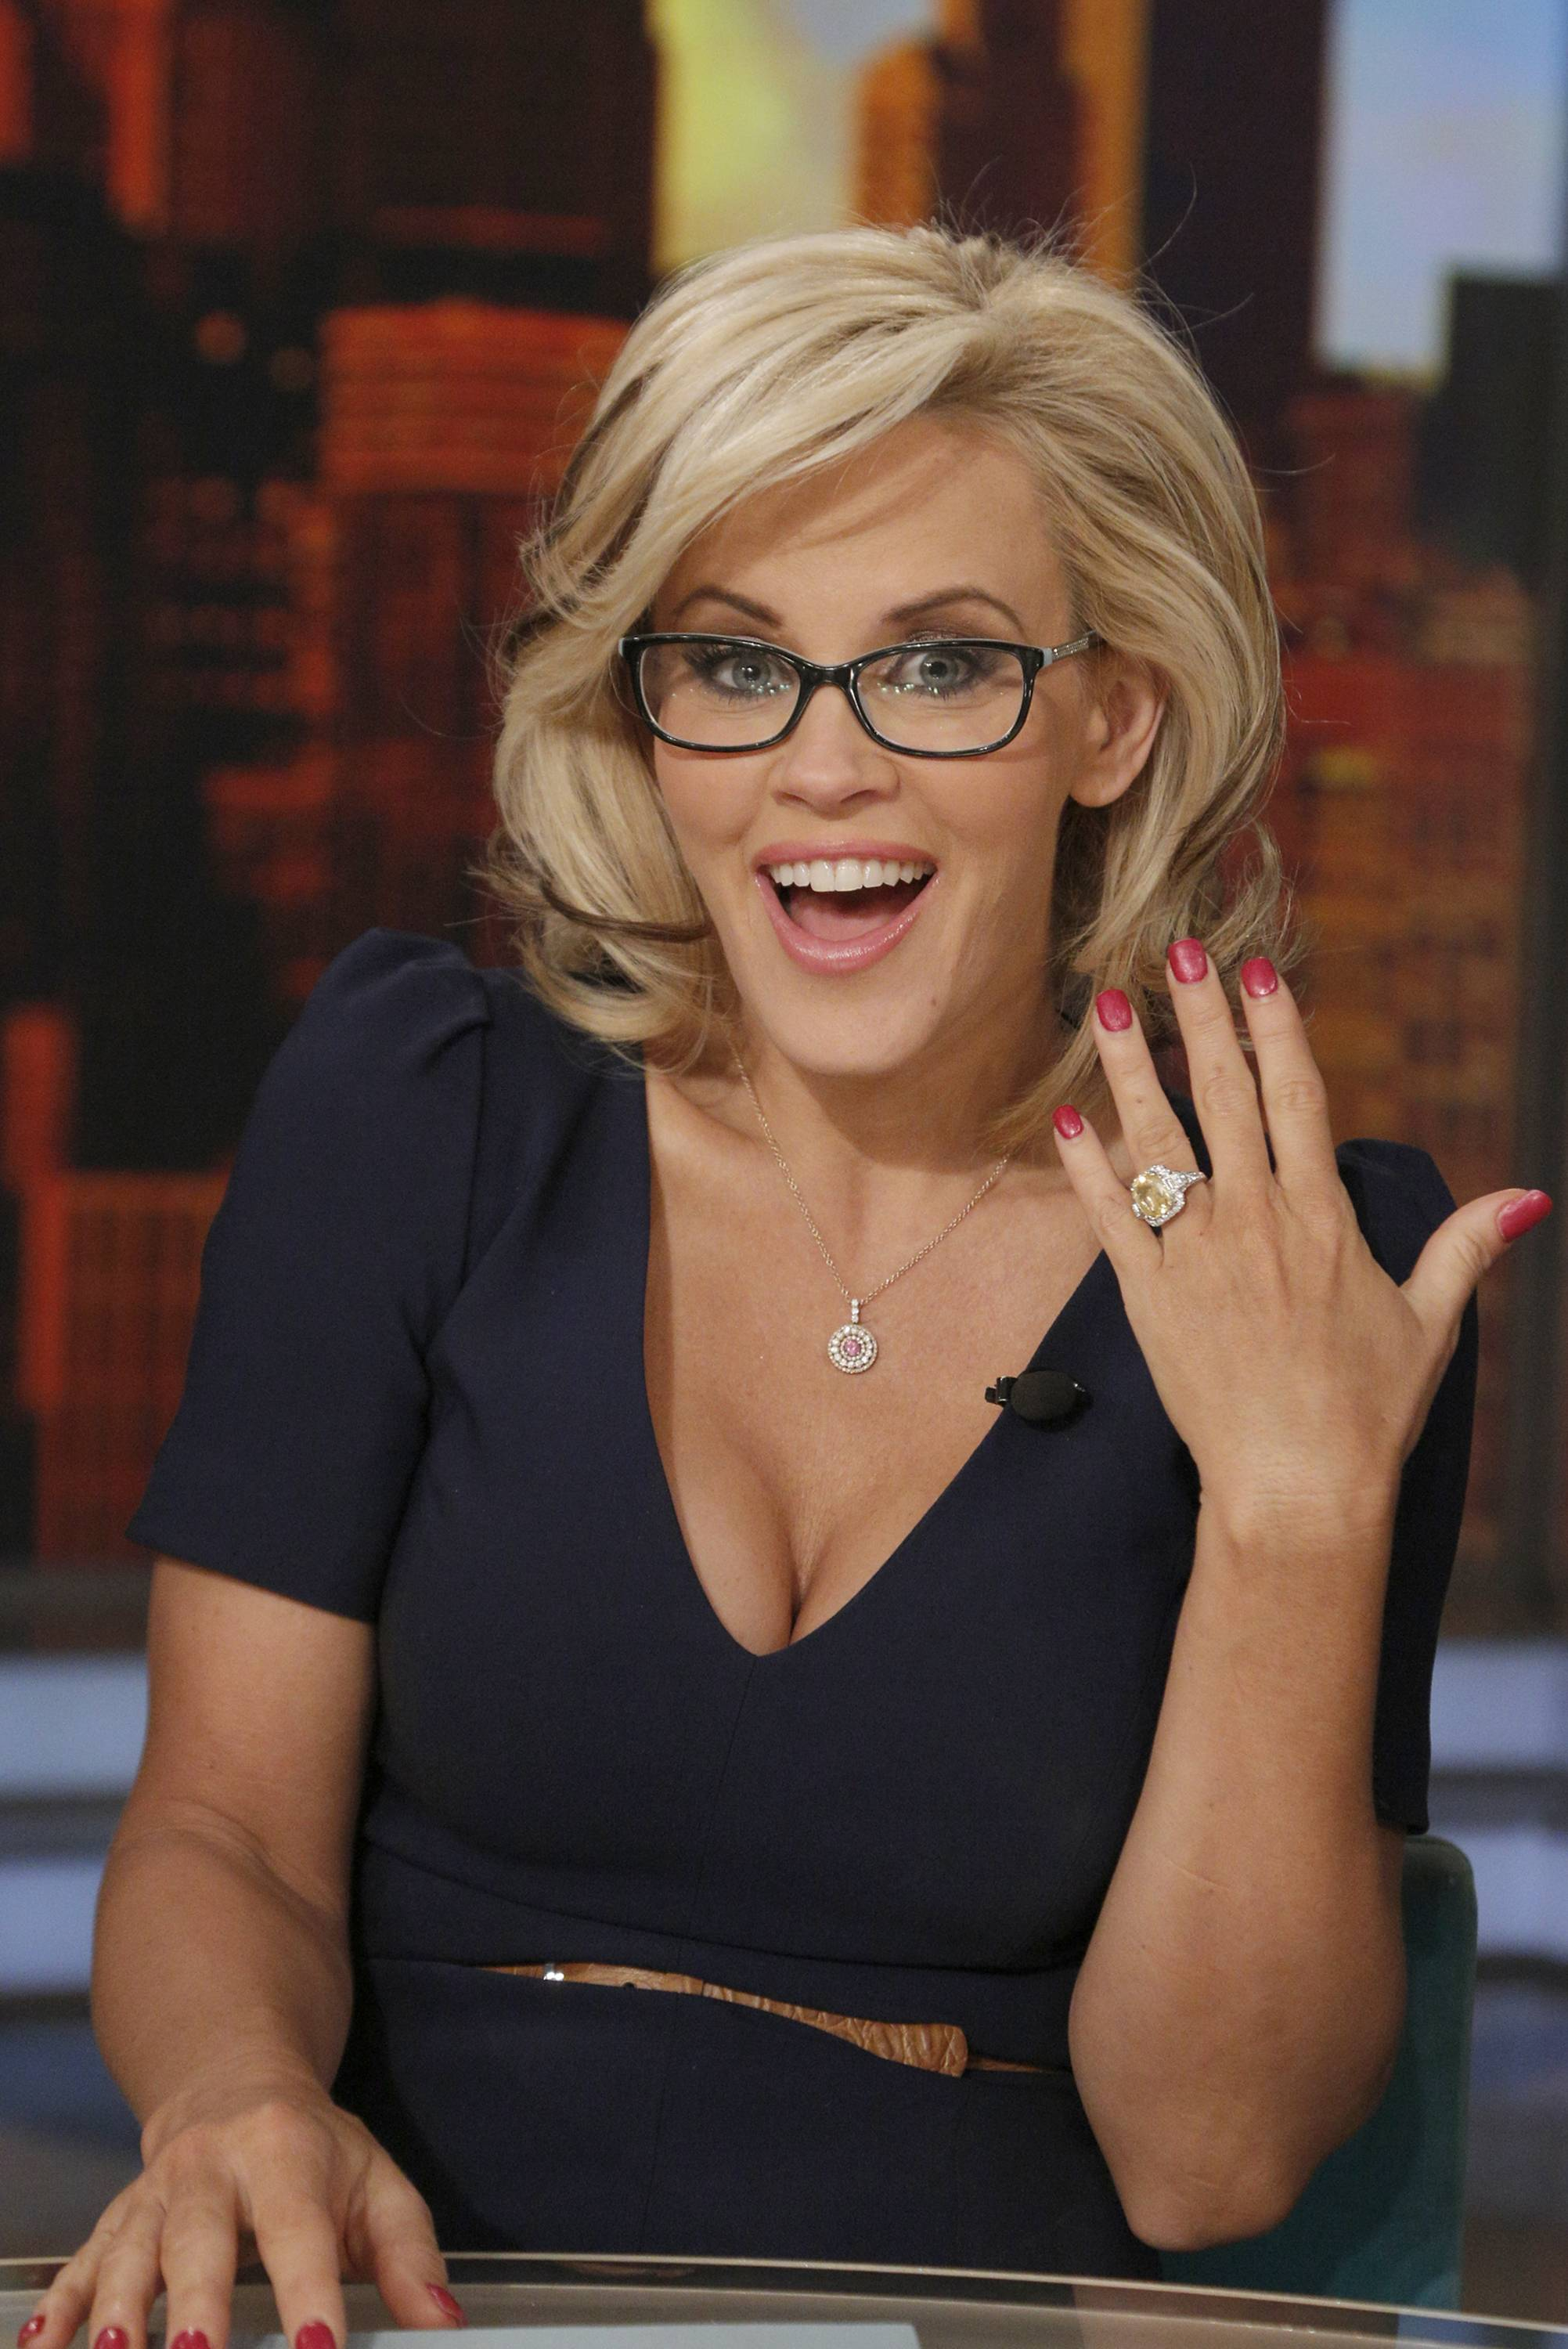 "Co-host Jenny McCarthy shows off her ring after she announced her engagement to fiance Donnie Wahlberg on the daytime series ""The View"" Wednesday."